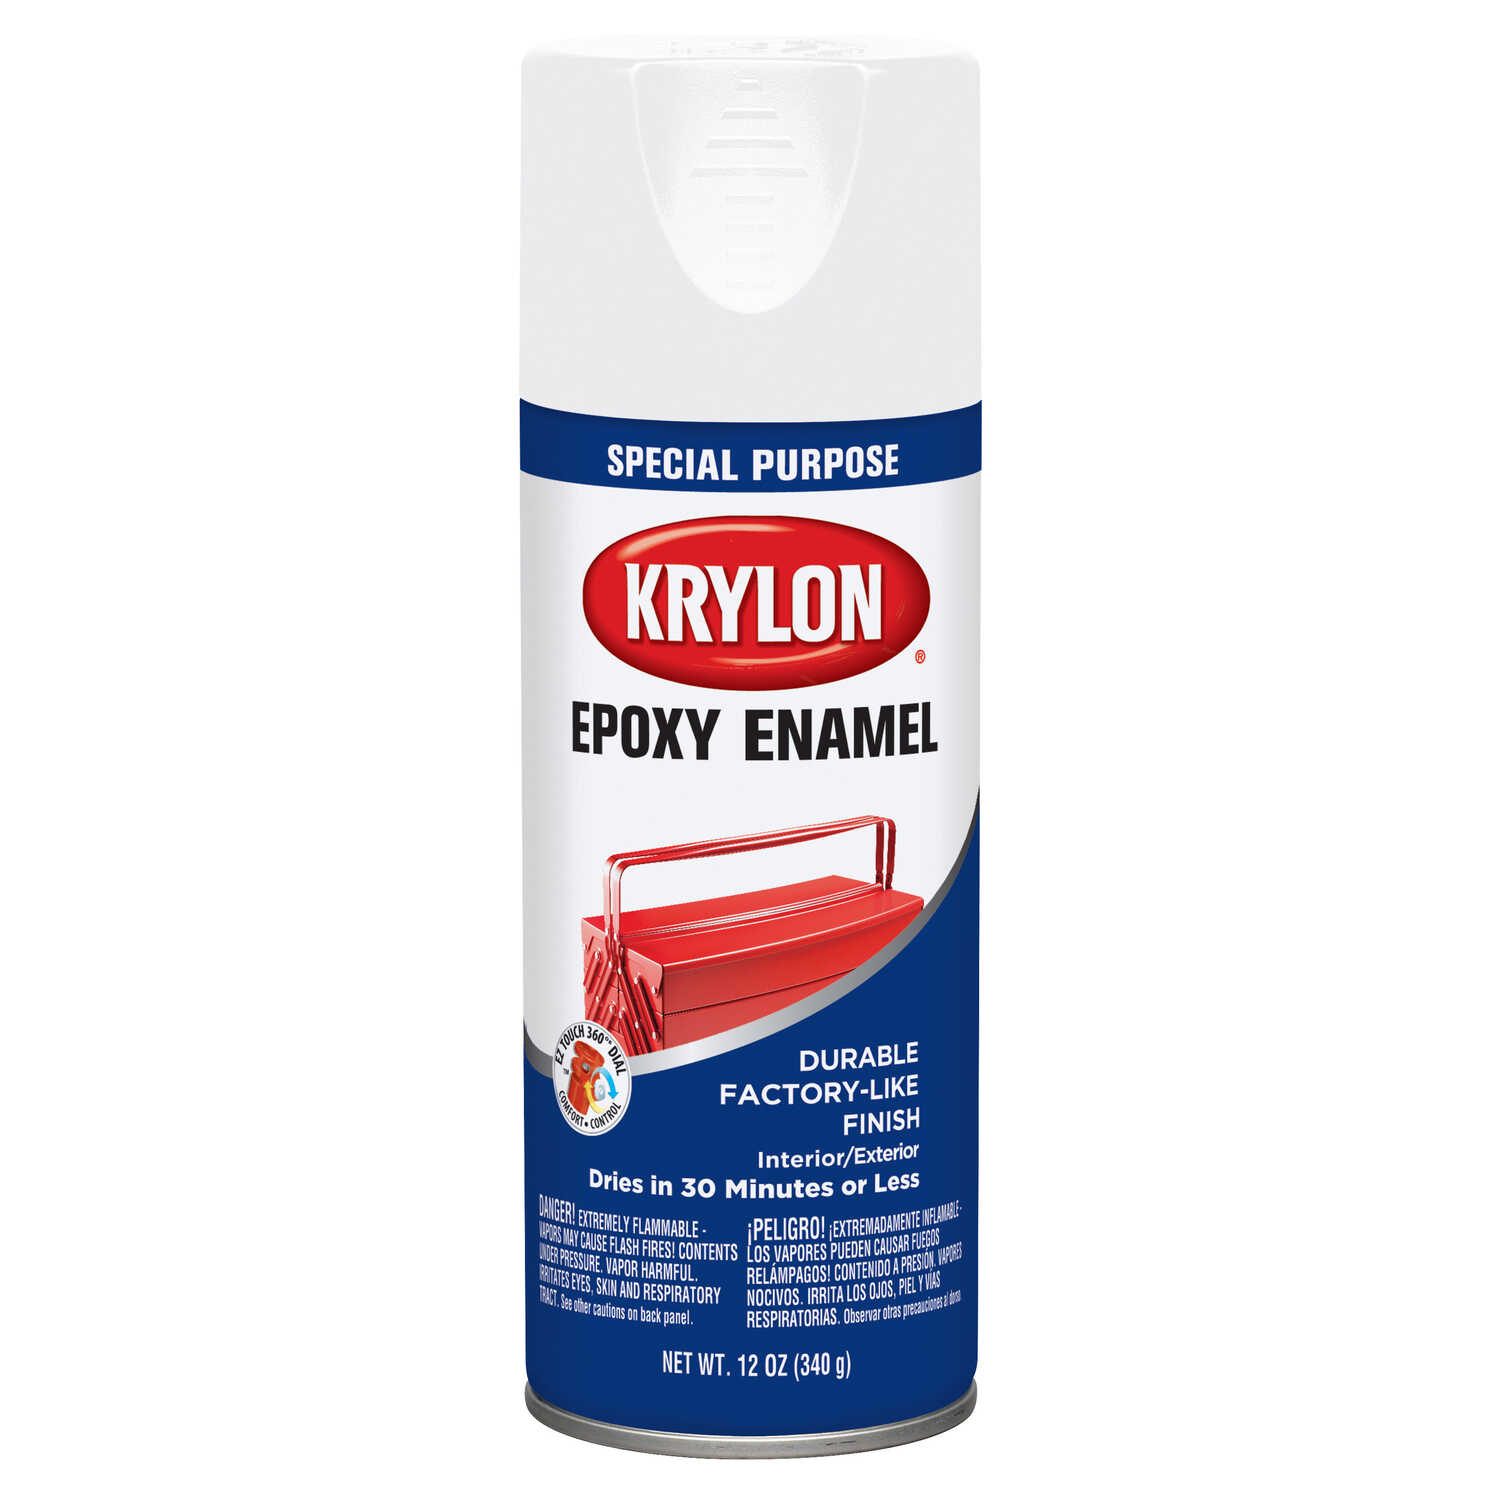 Krylon  Special Purpose  Gloss  White  Enamel Spray Paint  12 oz.